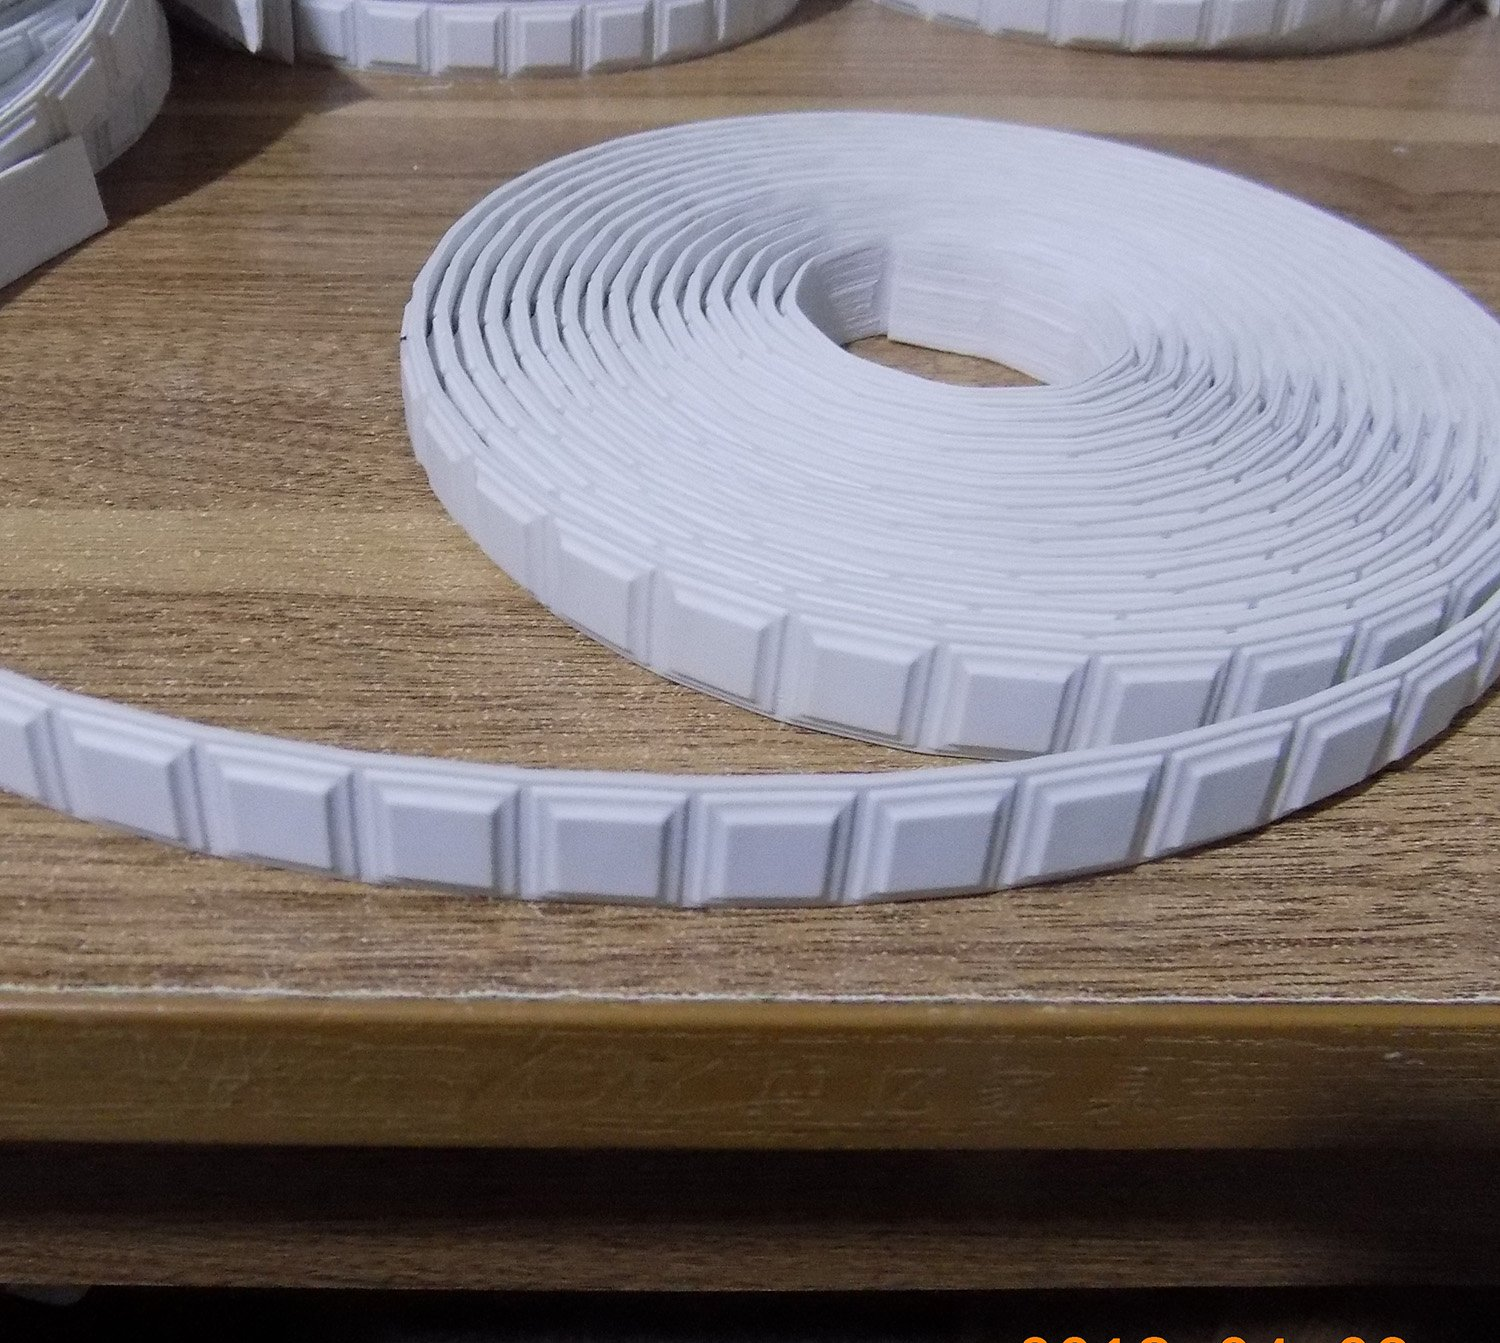 Curved Flexible Molding Dentil Block Decorative for Door Cabinets Wardrobes Drawers Moulding Trim Furniture 0.7inch (1.8cm) x 20 Foot Small Square